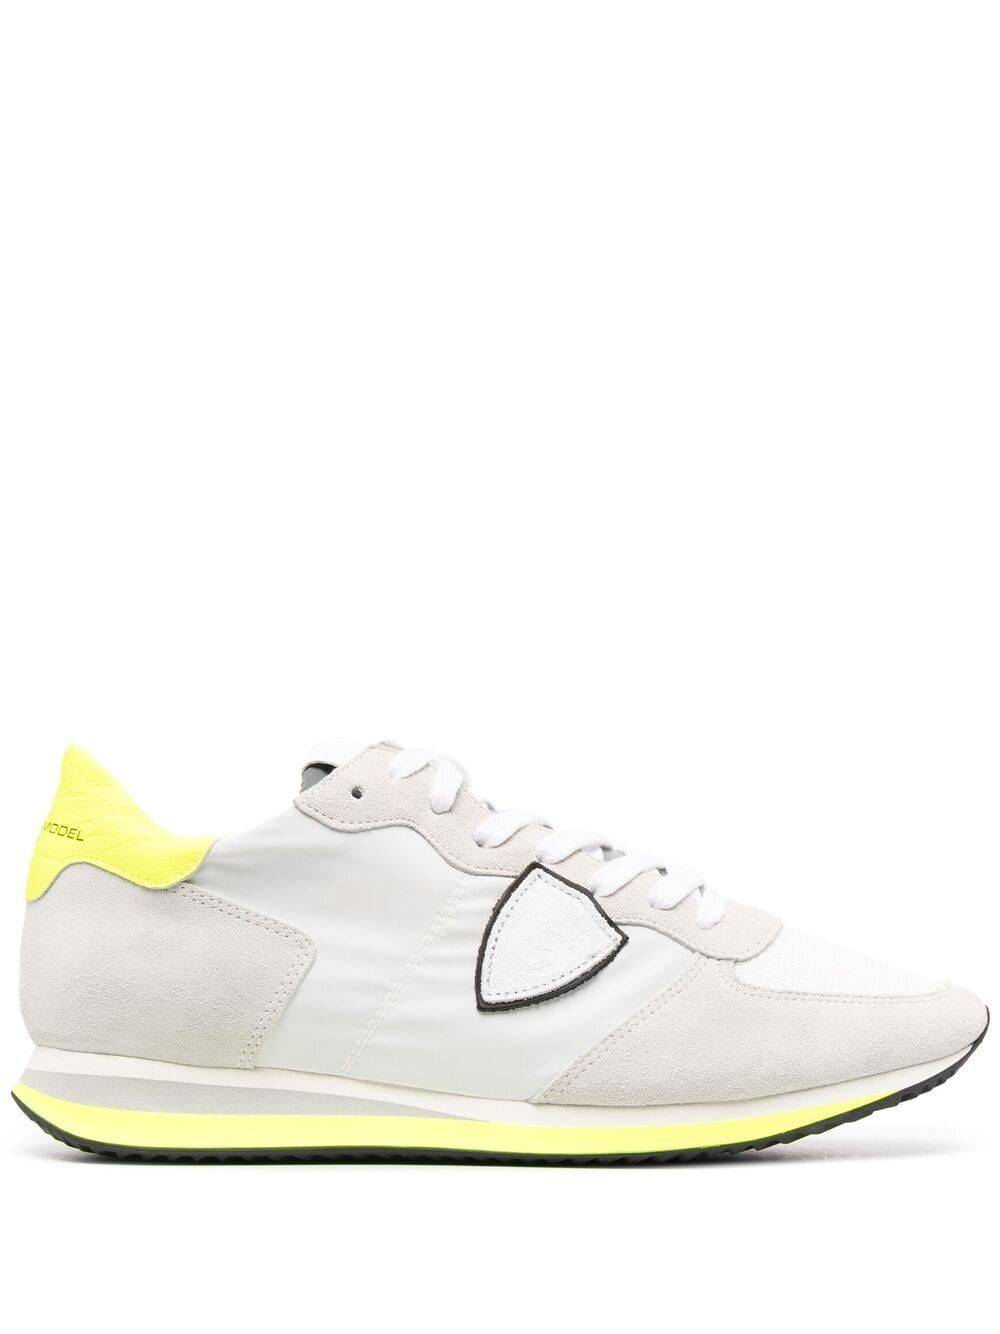 Philippe Model Sports PHILIPPE MODEL MEN'S TZLUWN12 WHITE LEATHER SNEAKERS